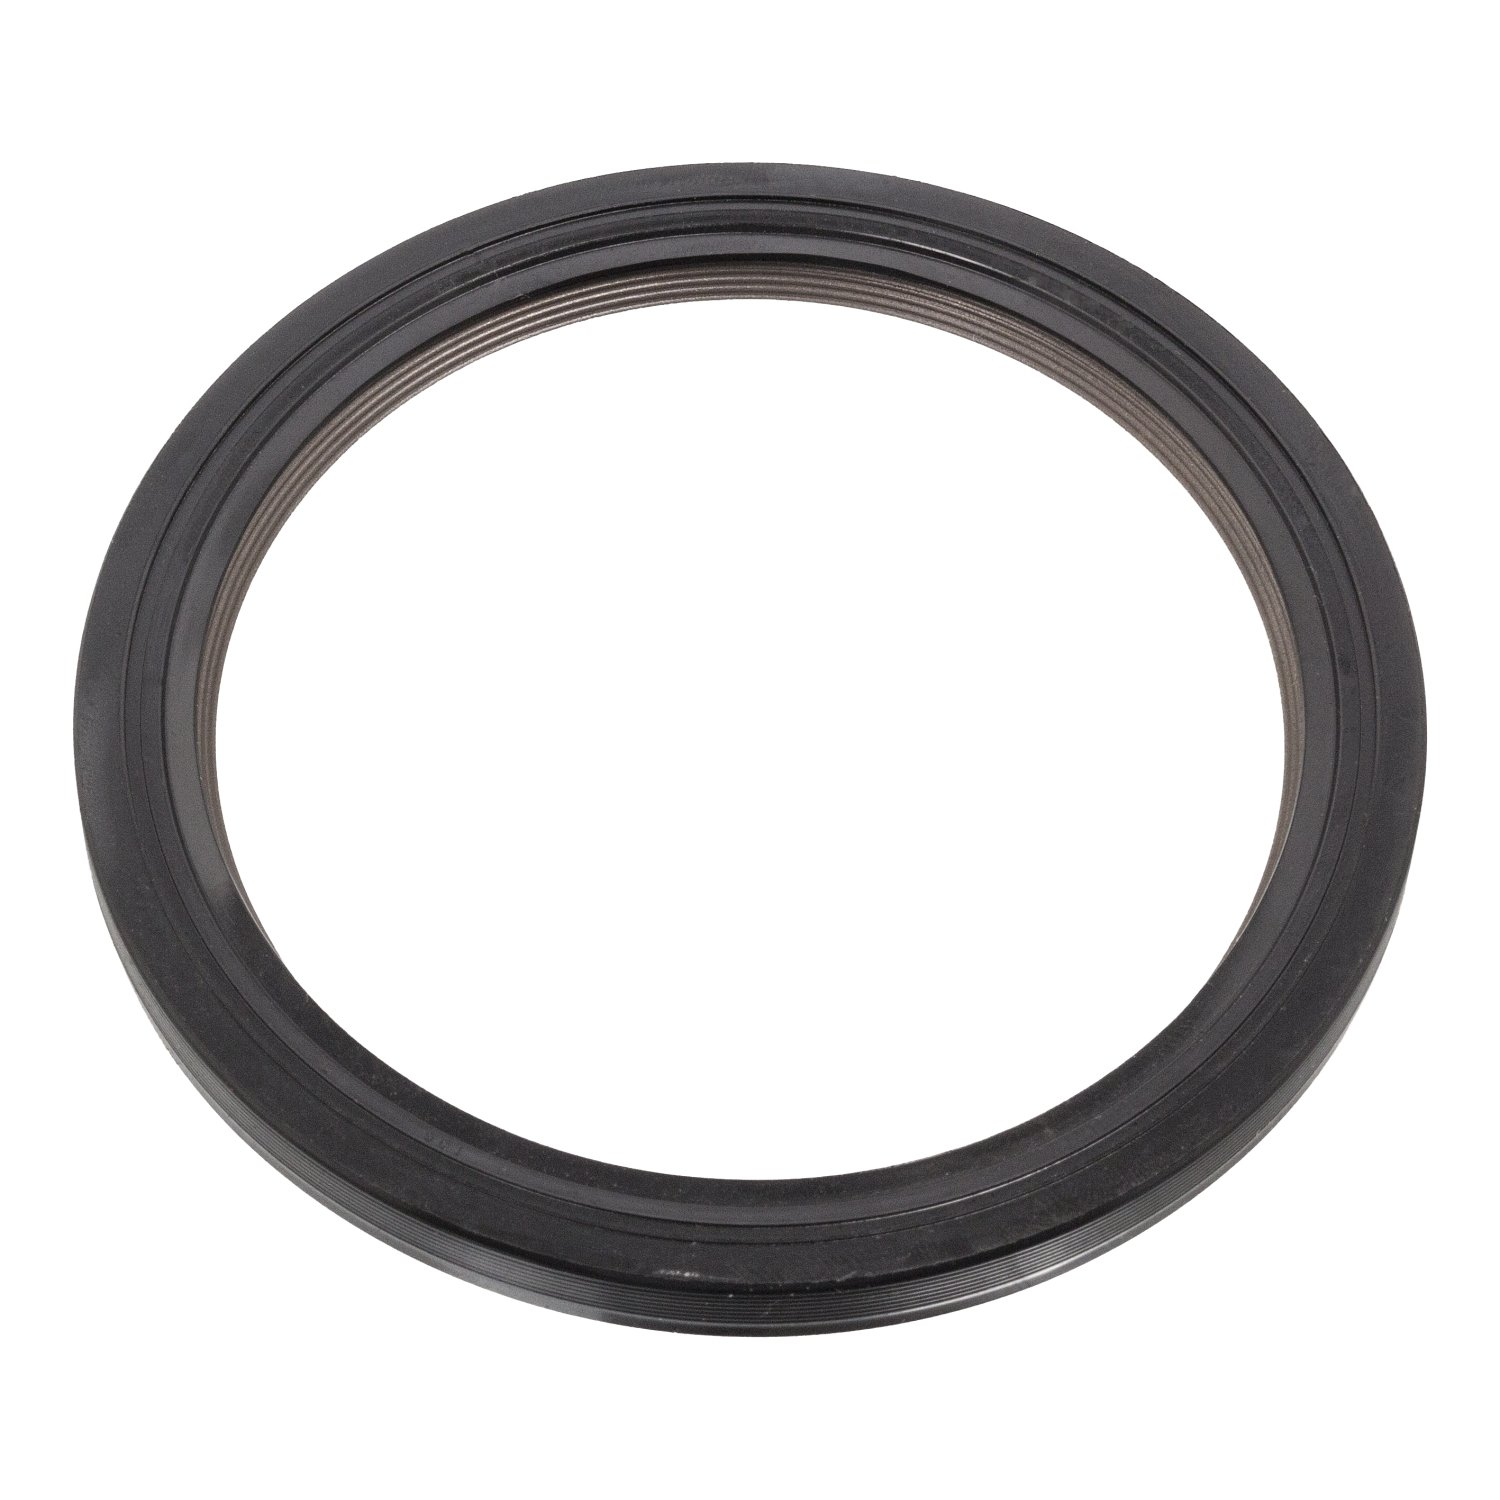 Febi 11813 Crankshaft Oil Seal